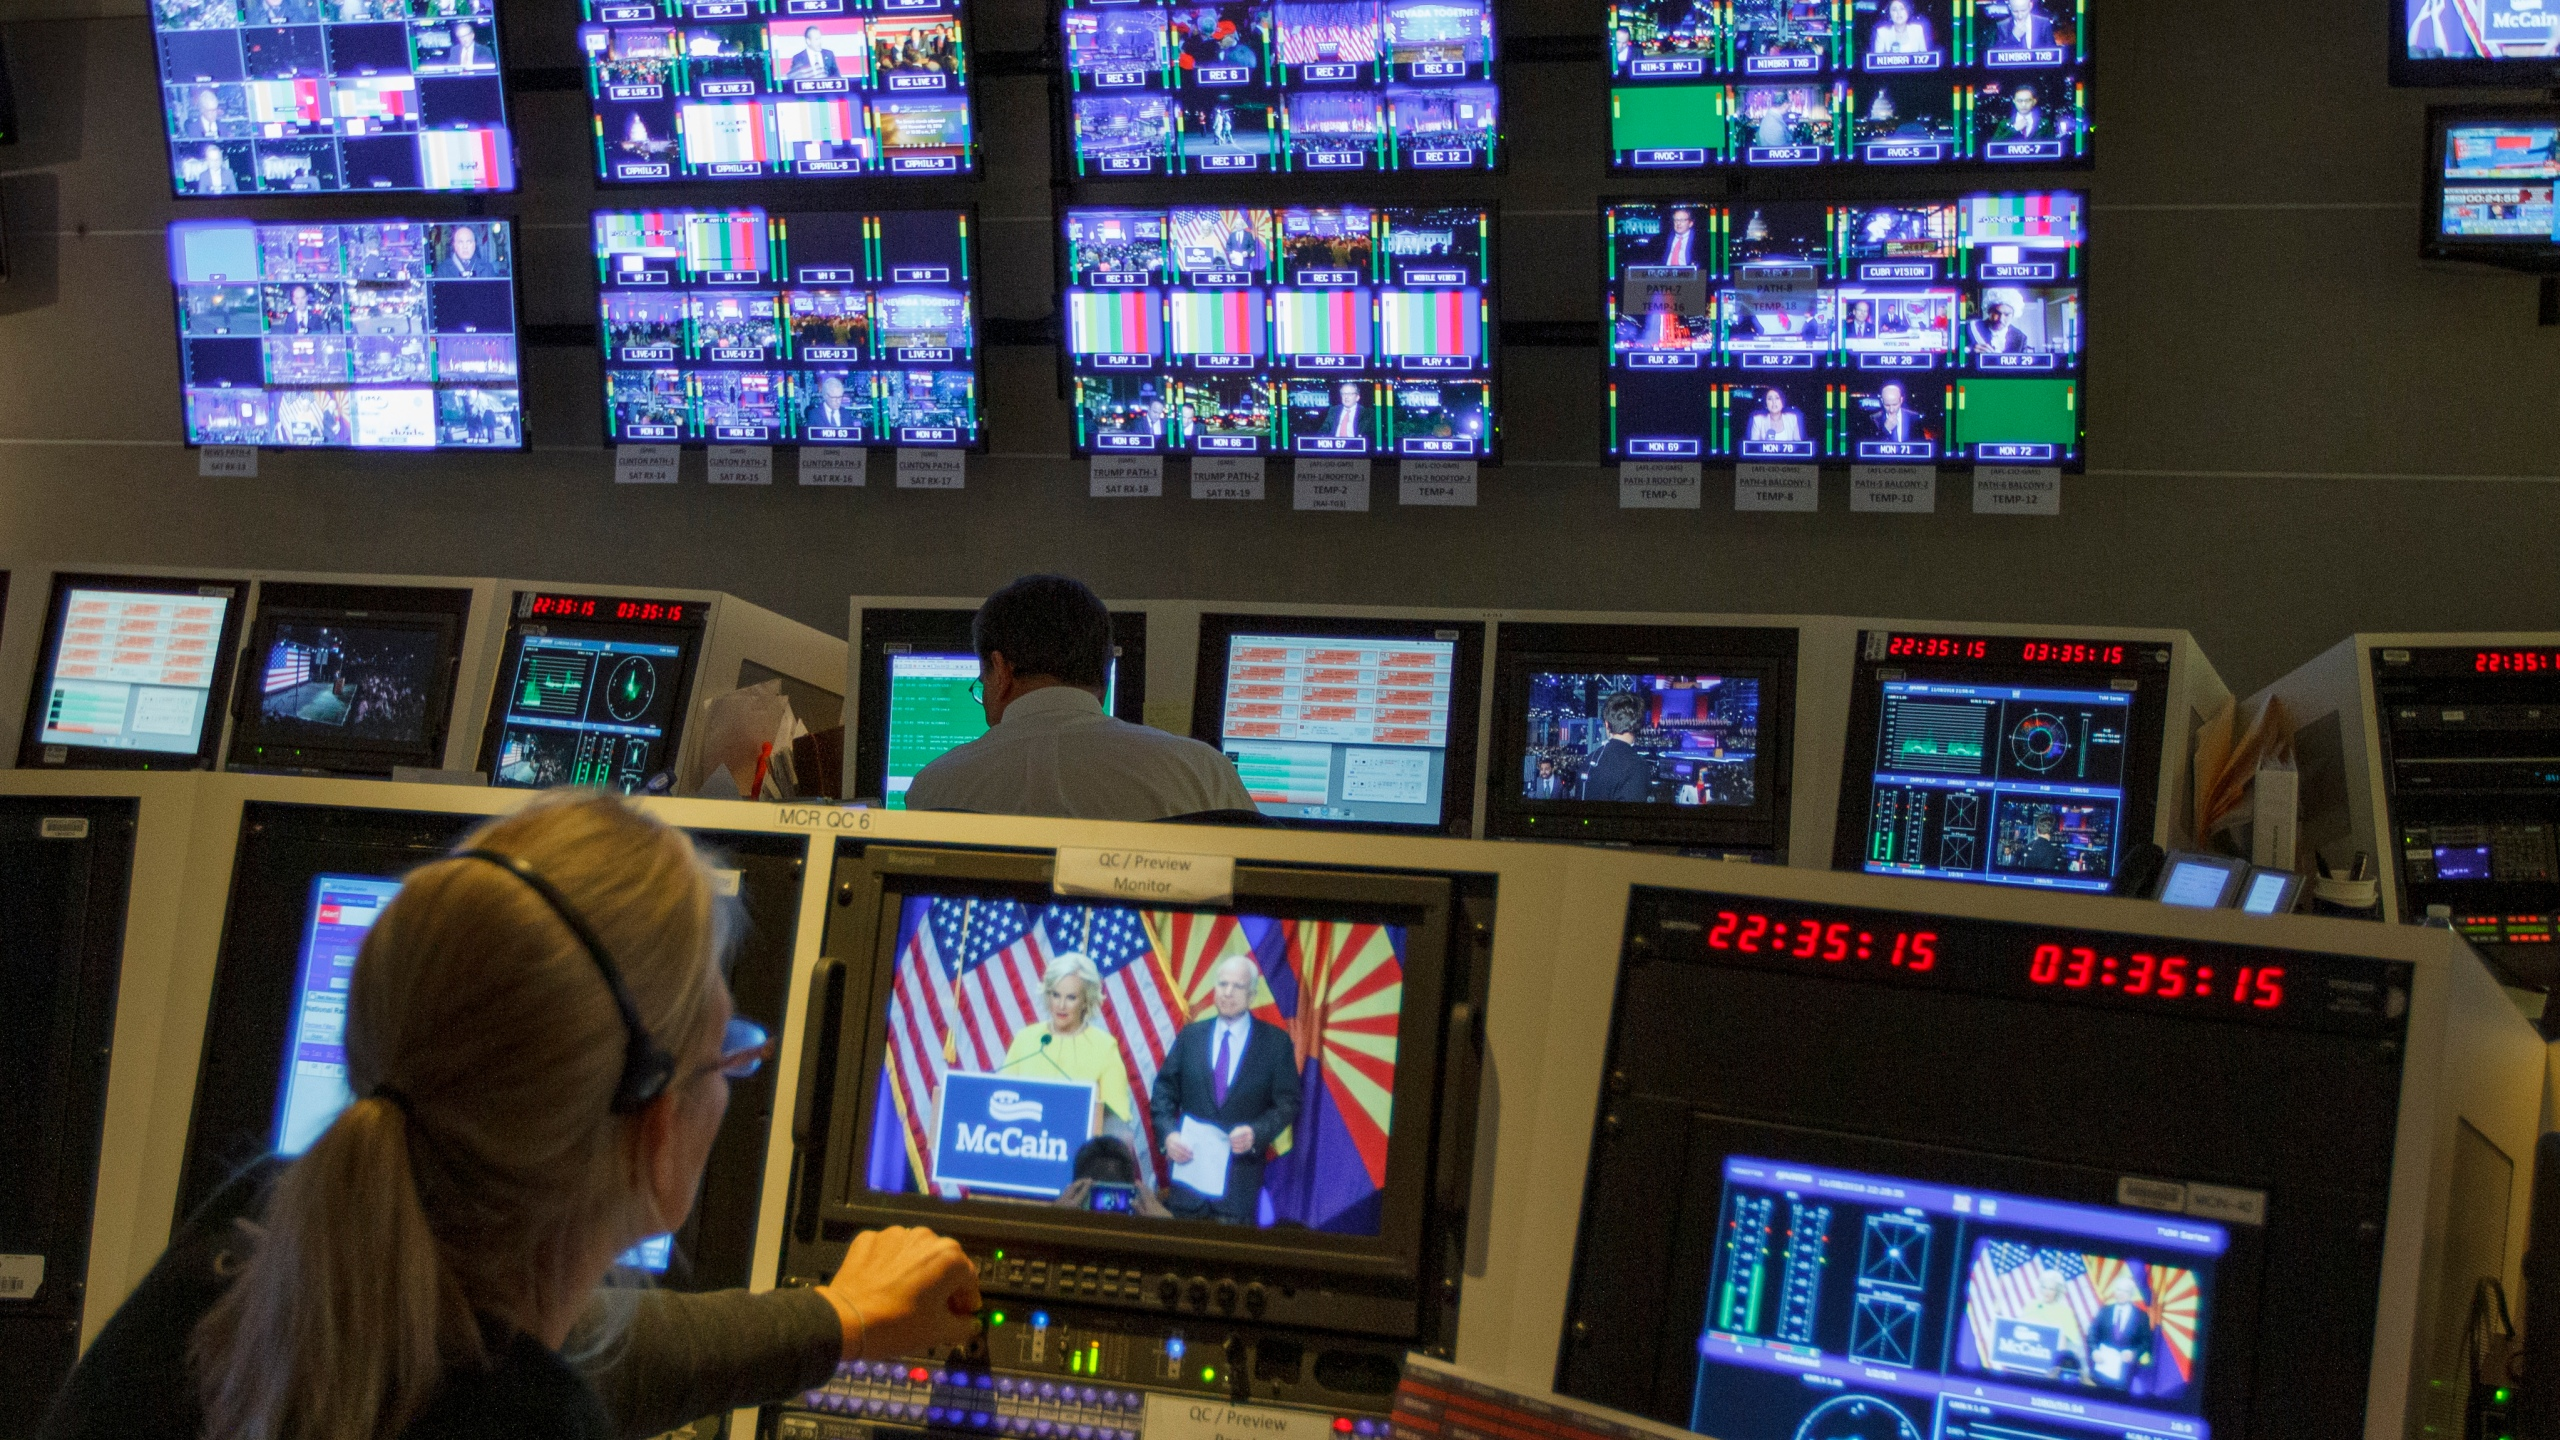 In this Nov. 8, 2016, photo, staff members of The Associated Press Television Network work in master control at the organization's Washington bureau as returns come in during election night. (Jon Elswick / Associated Press)